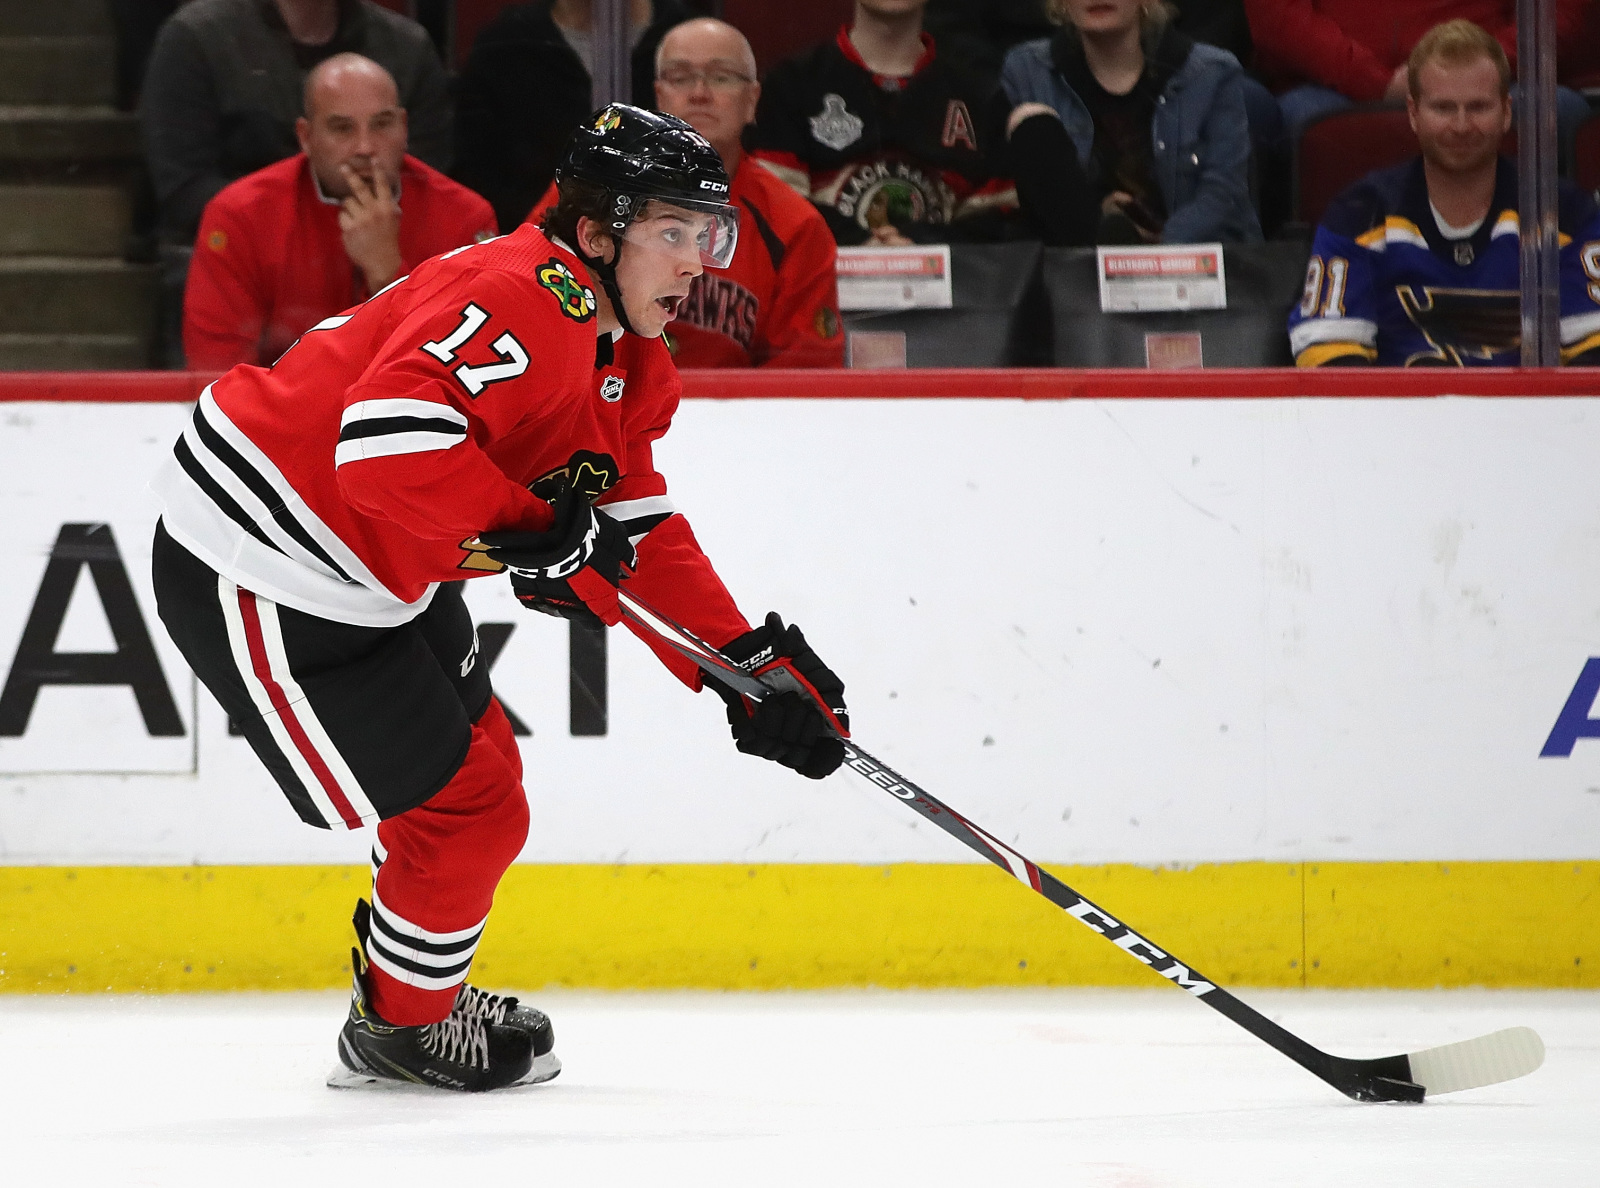 Chicago Blackhawks: Trading Dylan Strome would be an awful move